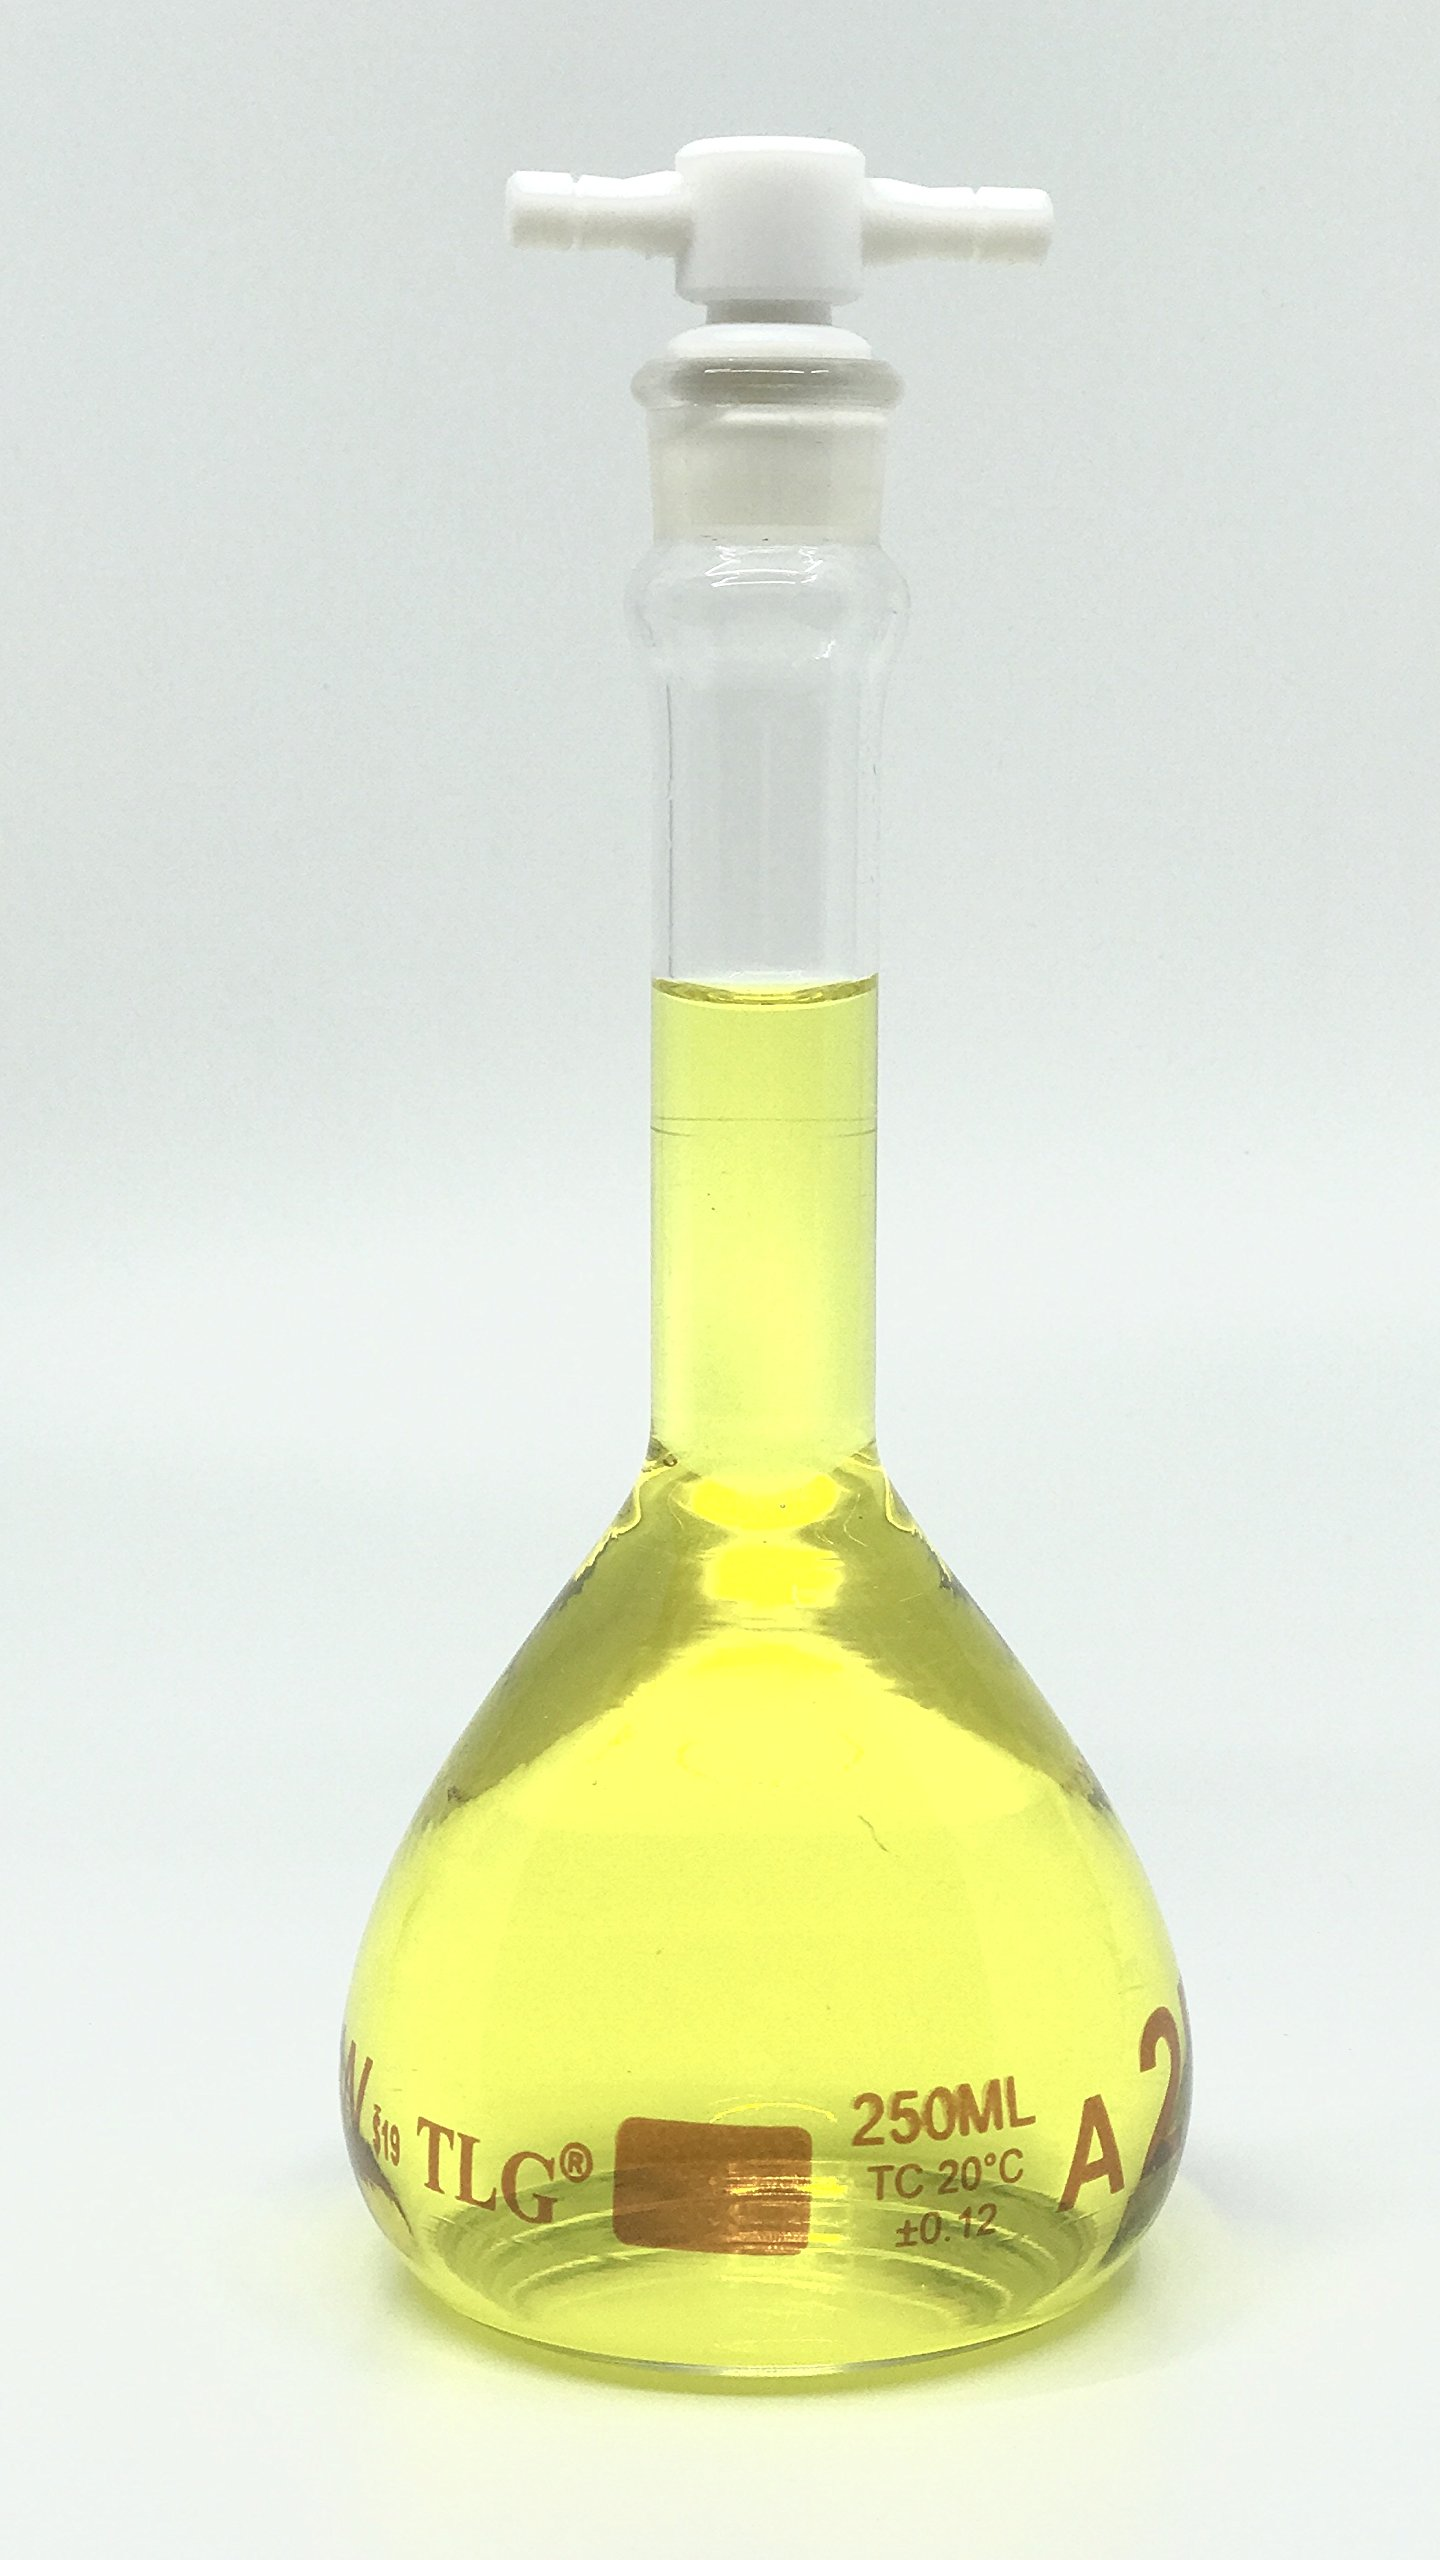 CHEM SCIENCE INC 129.703.07 Volumetric Flask, Serialized and Certified with One Graduation Mark Class A, Wide Mouth, Capacity 250 mL with Teflon Stopper Size # 19